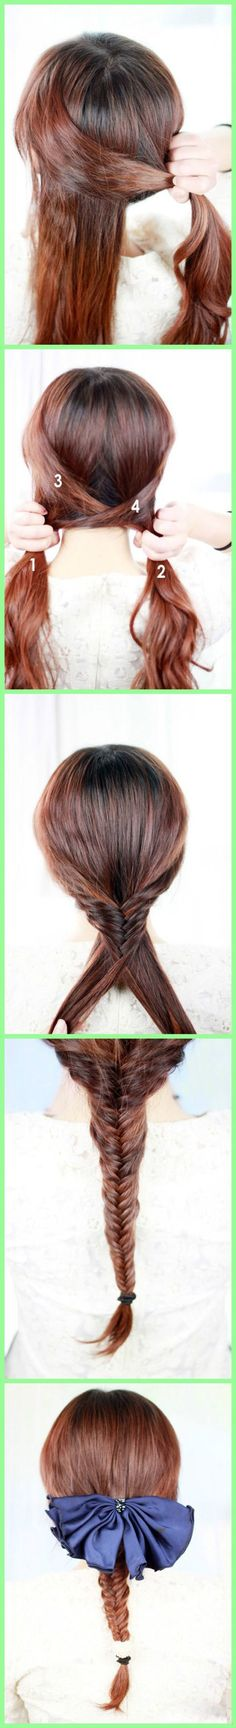 would you ruin this pretty braid with that giant, ugly bow? hmm?!